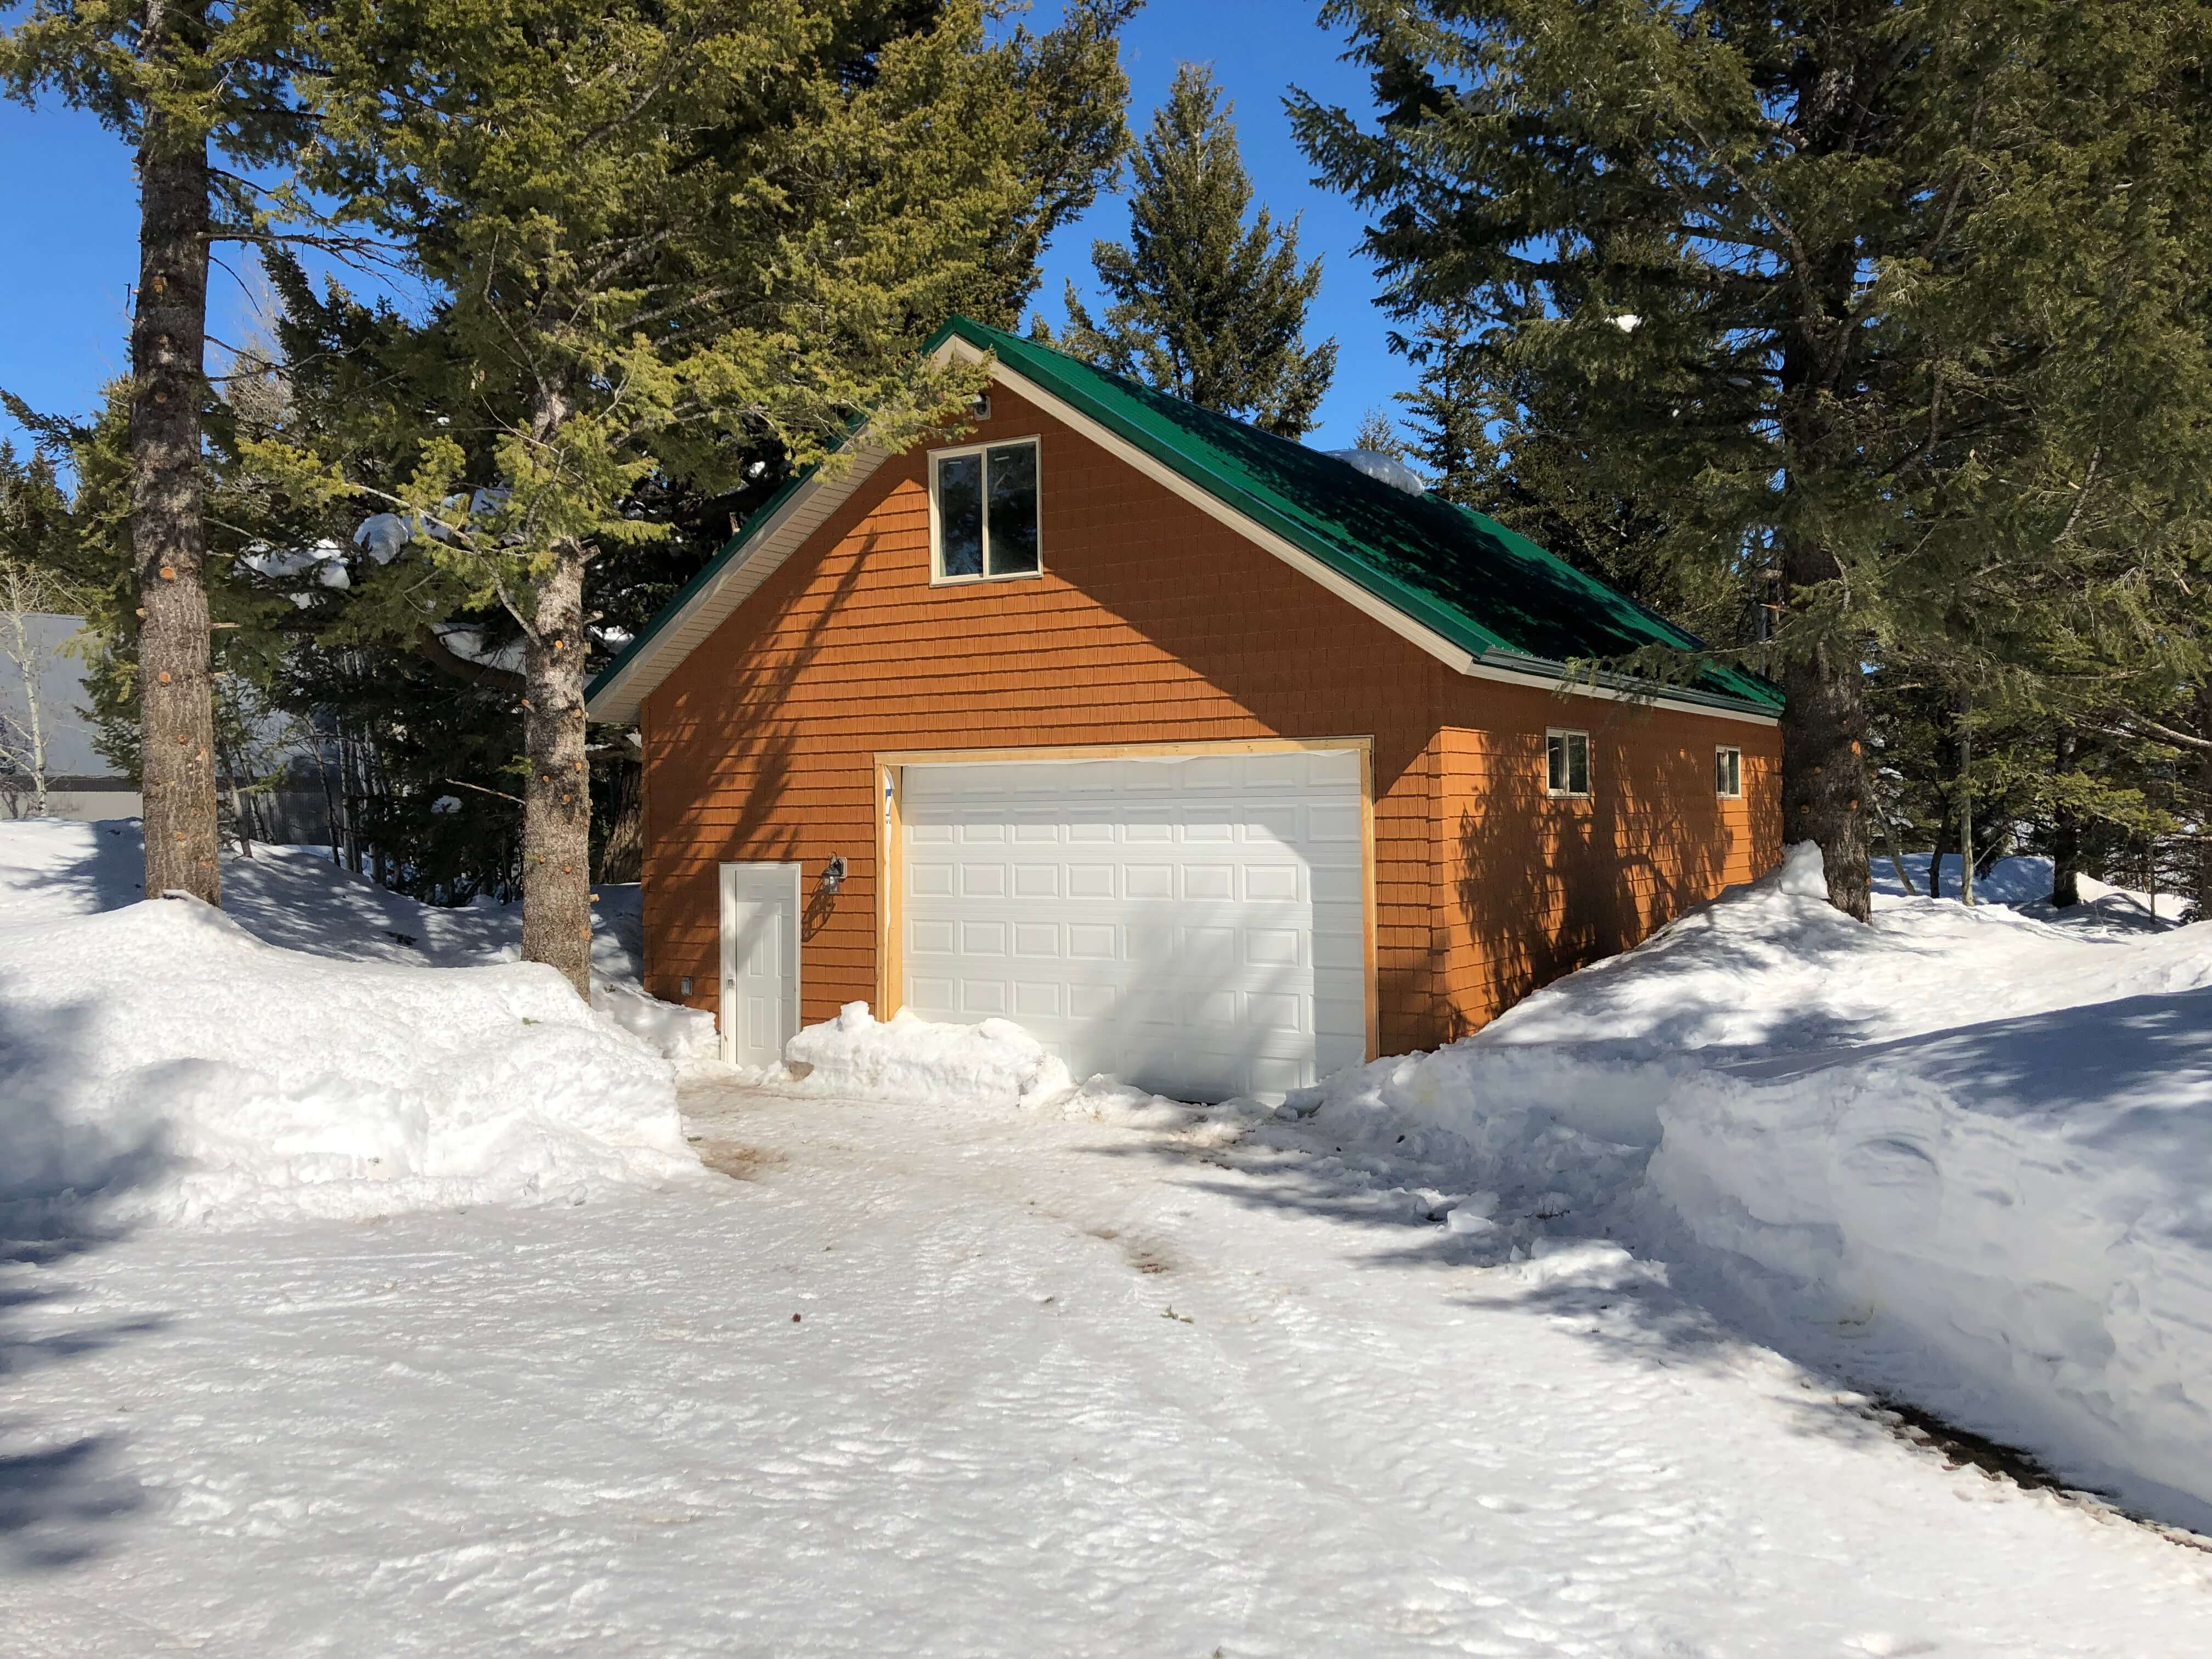 Small cabin loft with garage surrounded by lots of snow